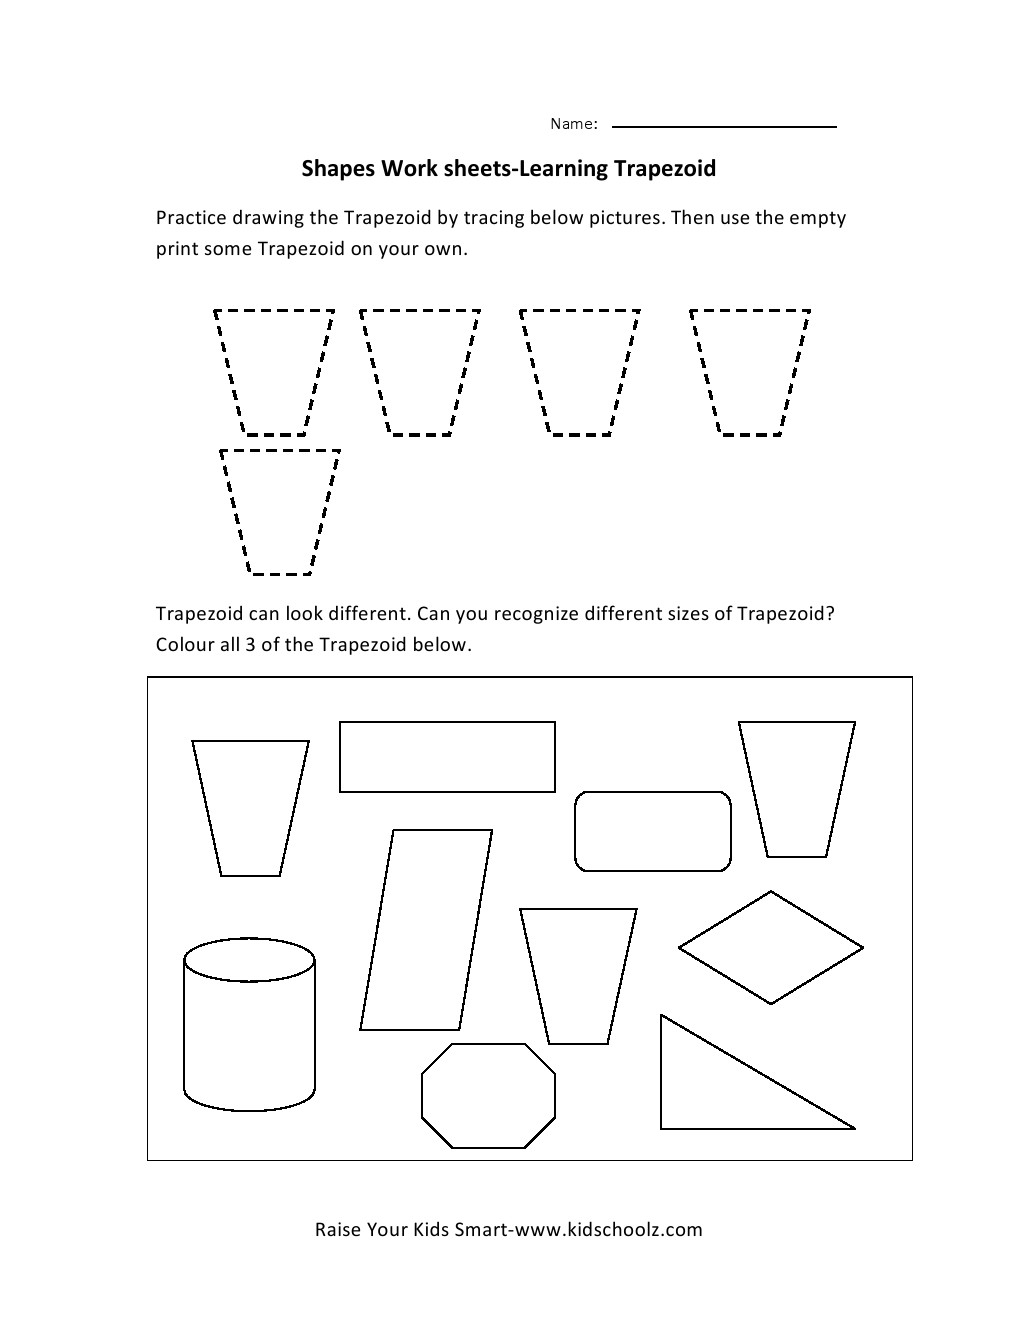 Worksheets Trapezoid Worksheet learning shapes worksheets trapezoid kidschoolzkidschoolz leave a comment